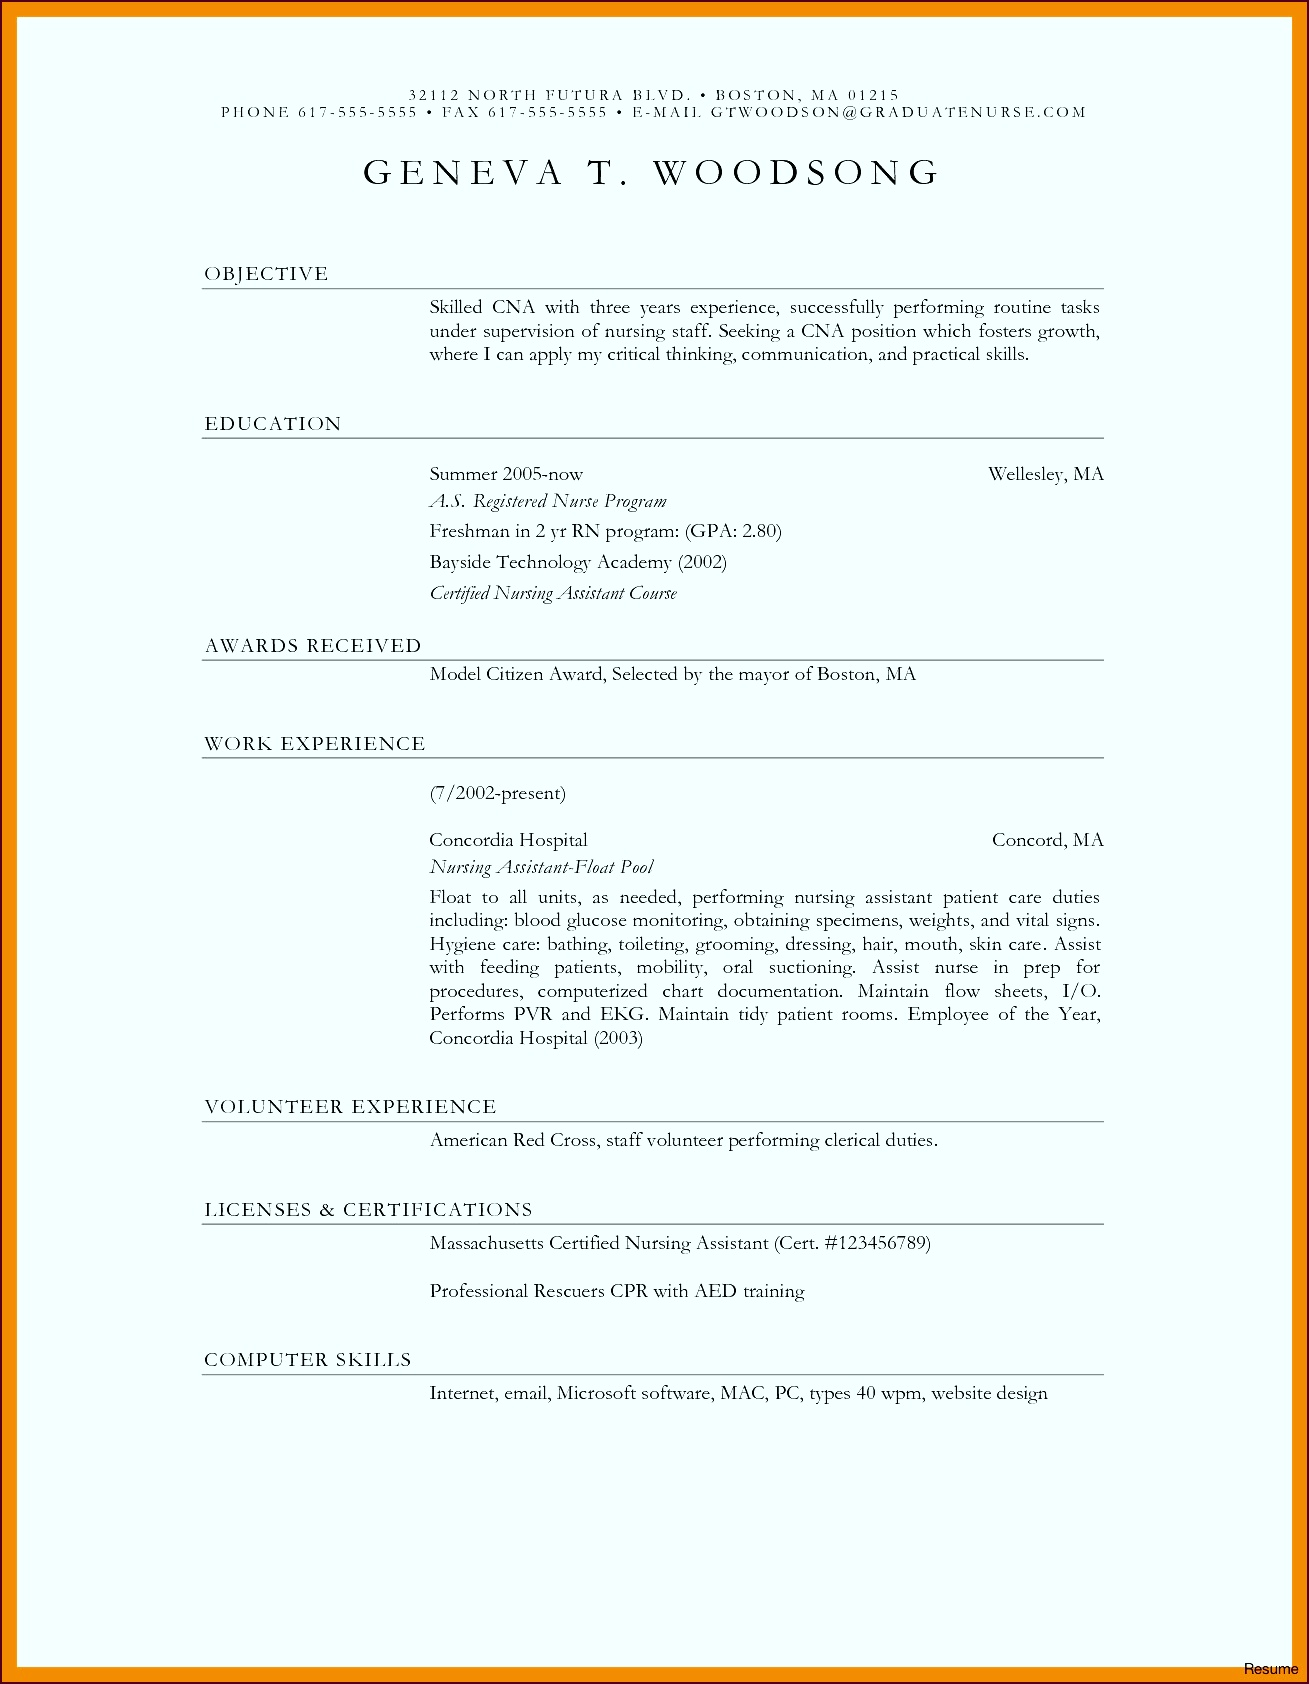 Email Resume Cover Letter Unique Skills Based Resume Template Luxury Skills Based Resume Templates Od eutuo